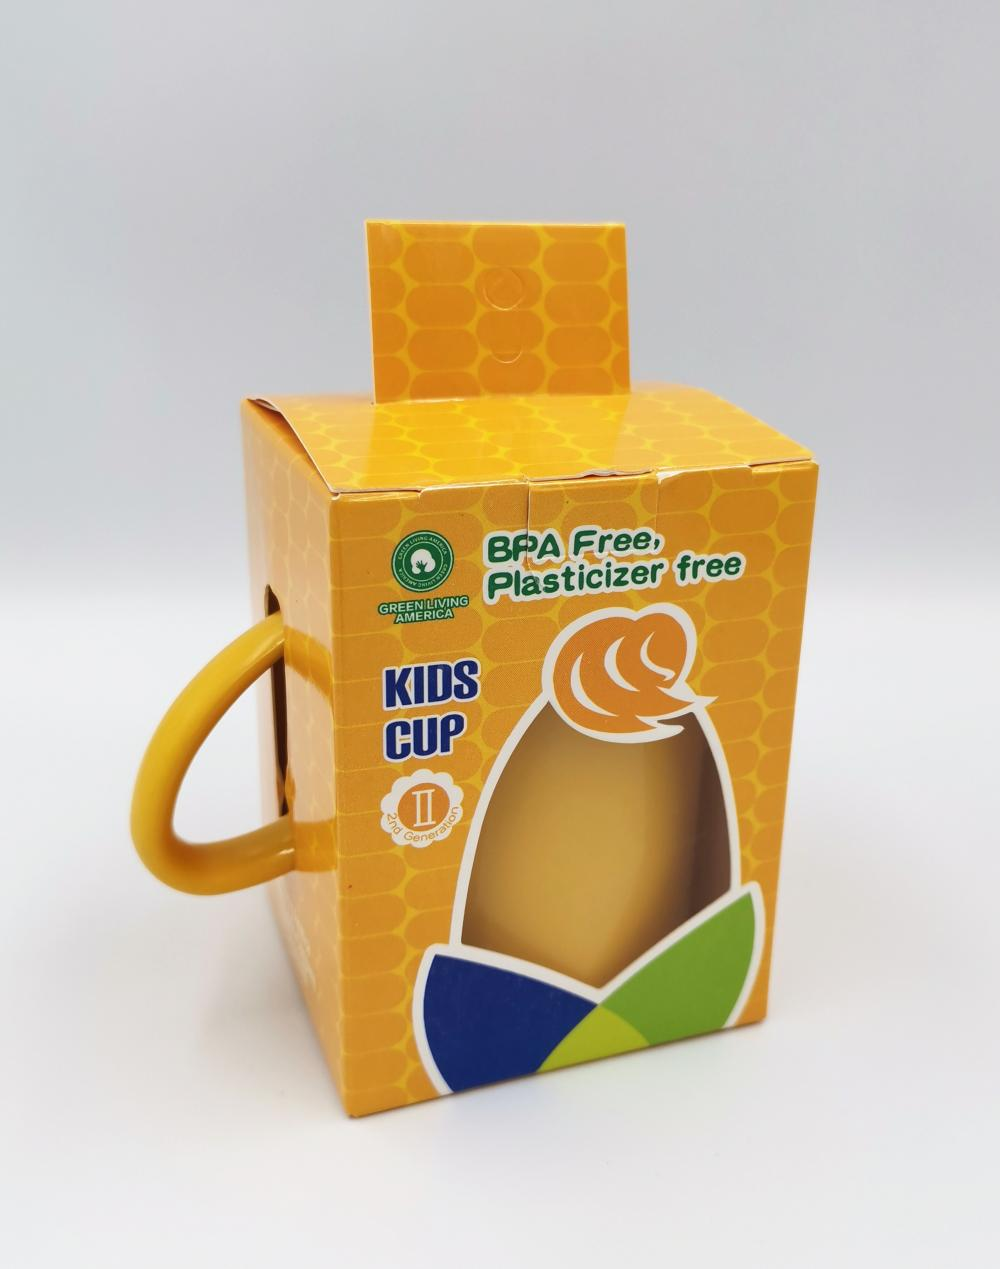 100% Biodegradable Corn-based Durable Kids Cup